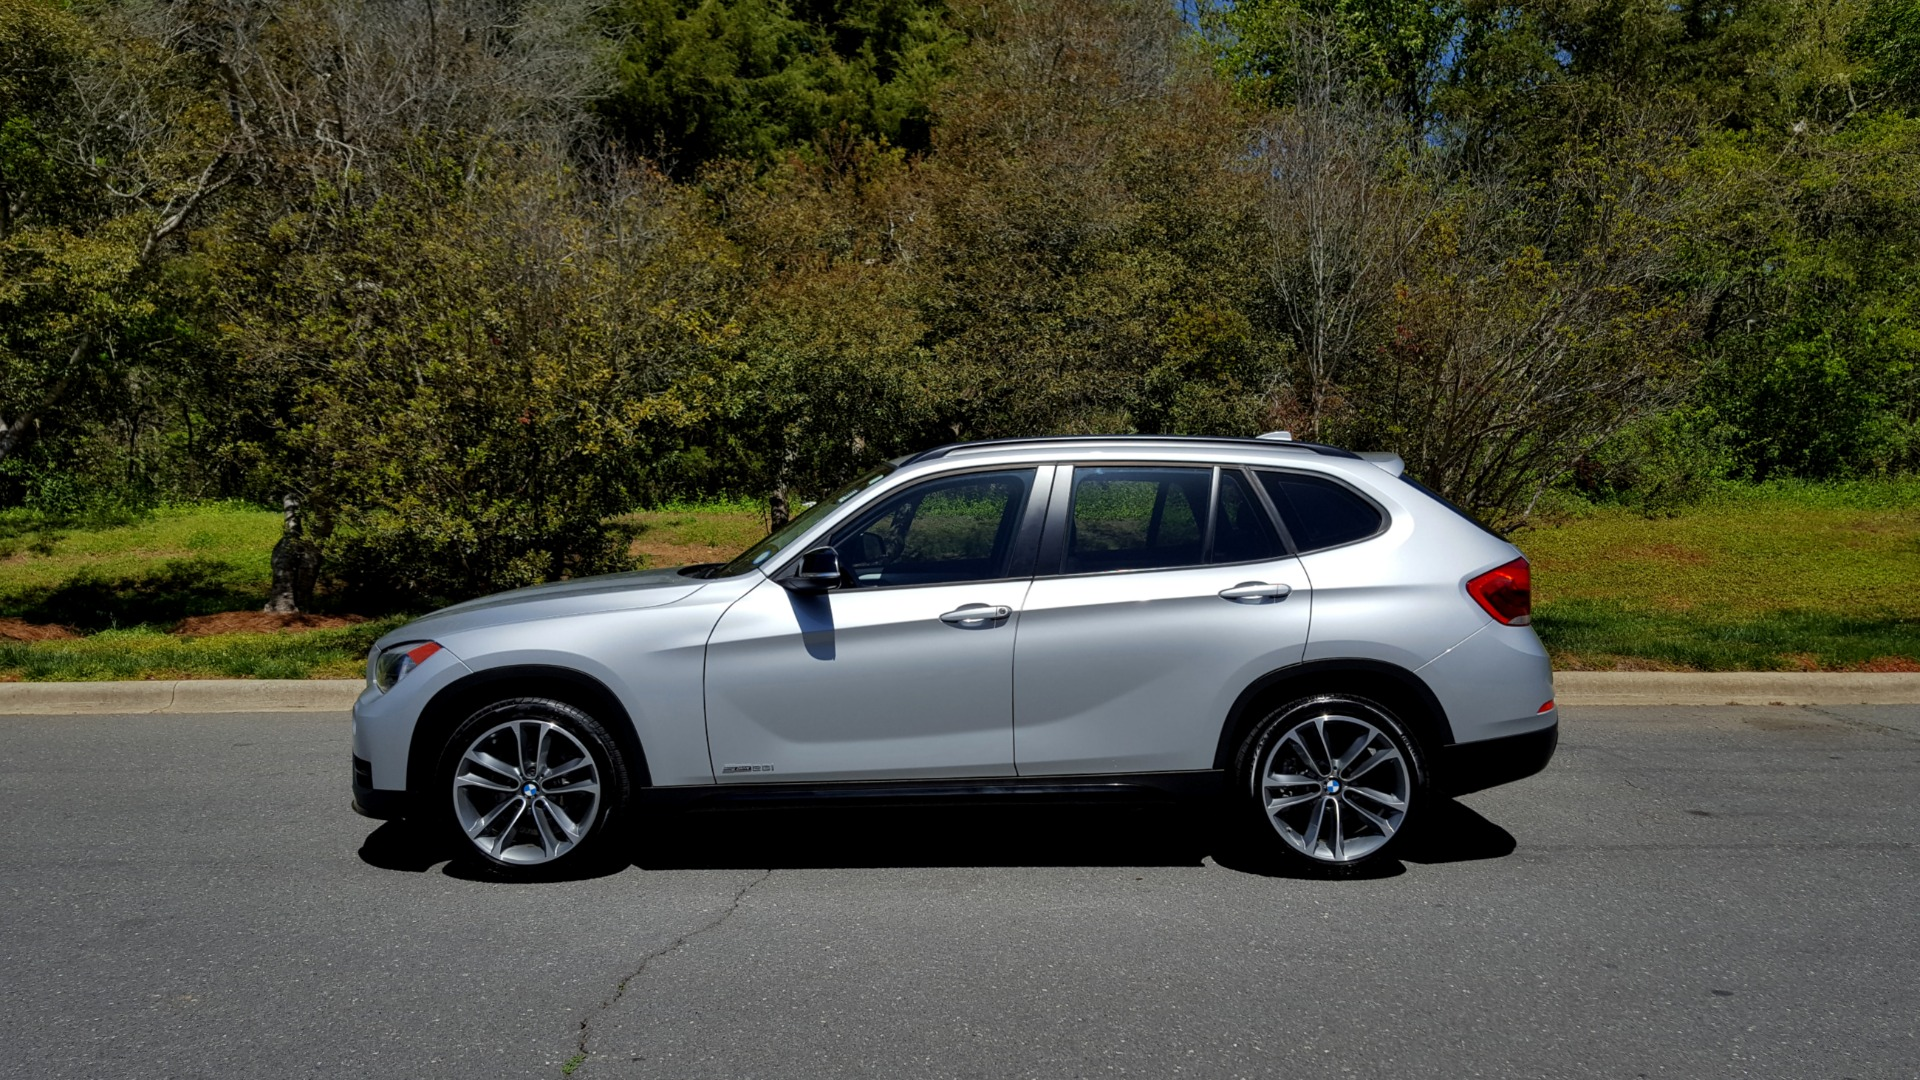 Used 2015 BMW X1 SDRIVE28I / SPORT LINE / PANO-ROOF / HTD STS / DUAL-ZONE CLIMATE for sale Sold at Formula Imports in Charlotte NC 28227 2